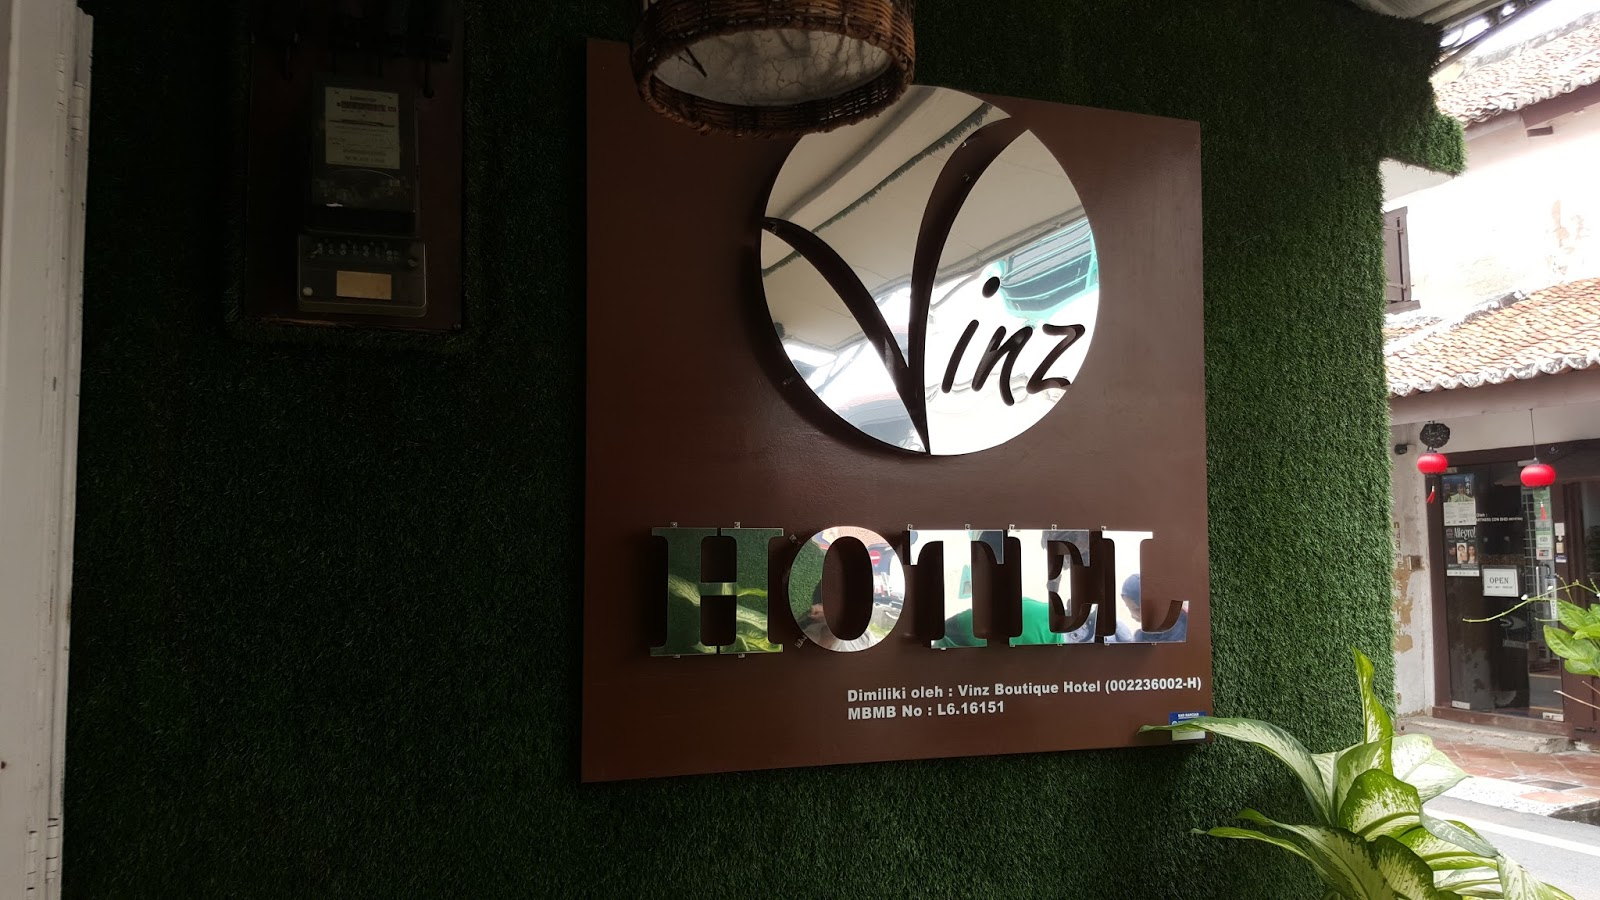 We Stayed At Vinz Boutique Hotel A Little Two Storey Located Just 1 Minute Walk Away From The Busy Jonker Street Very Friendly Staff